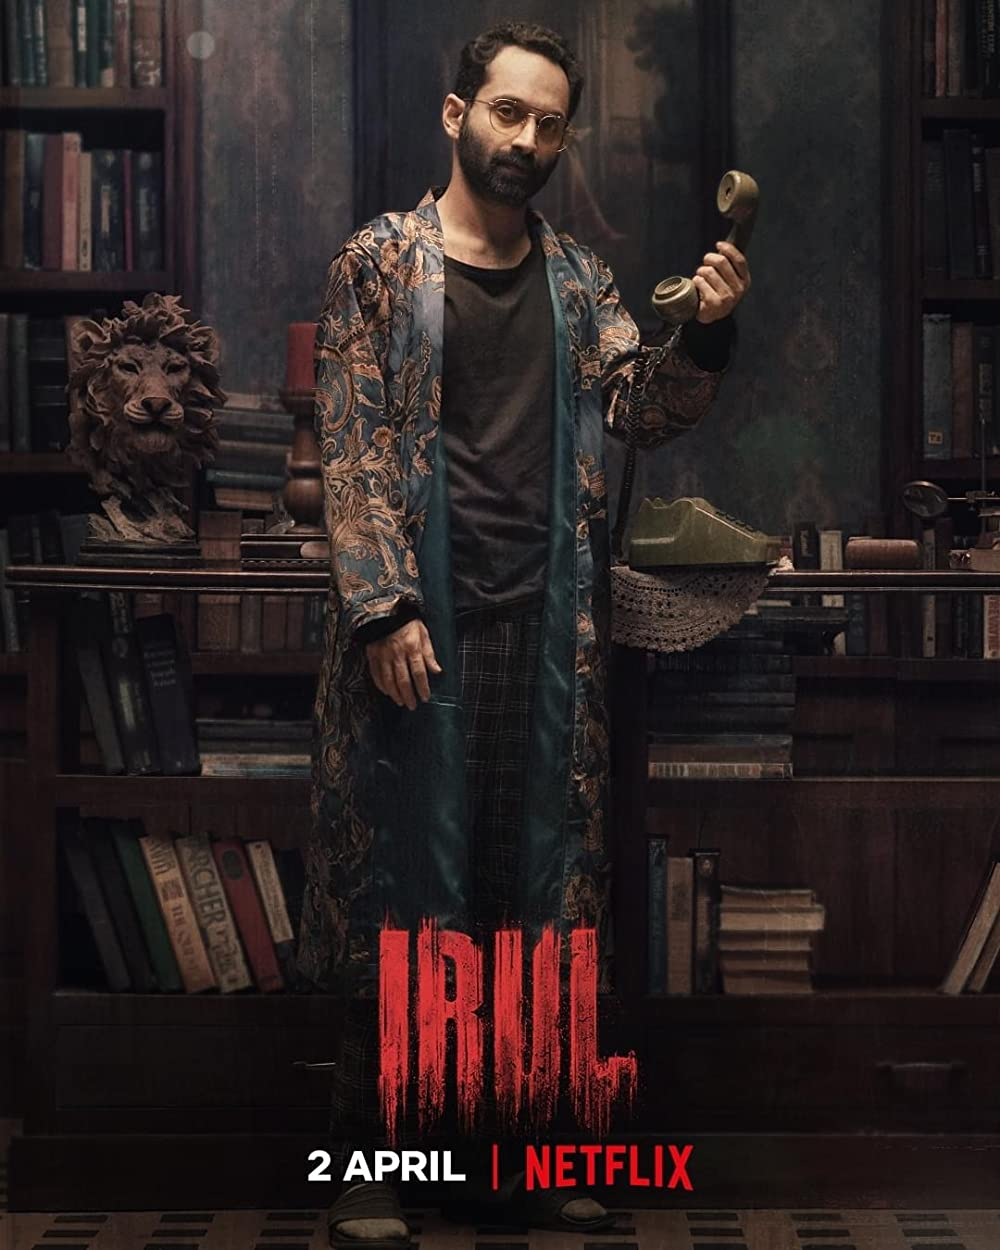 Irul 2021 Malayalam 720p NF HDRip MSubs 1.3GB x264 AAC